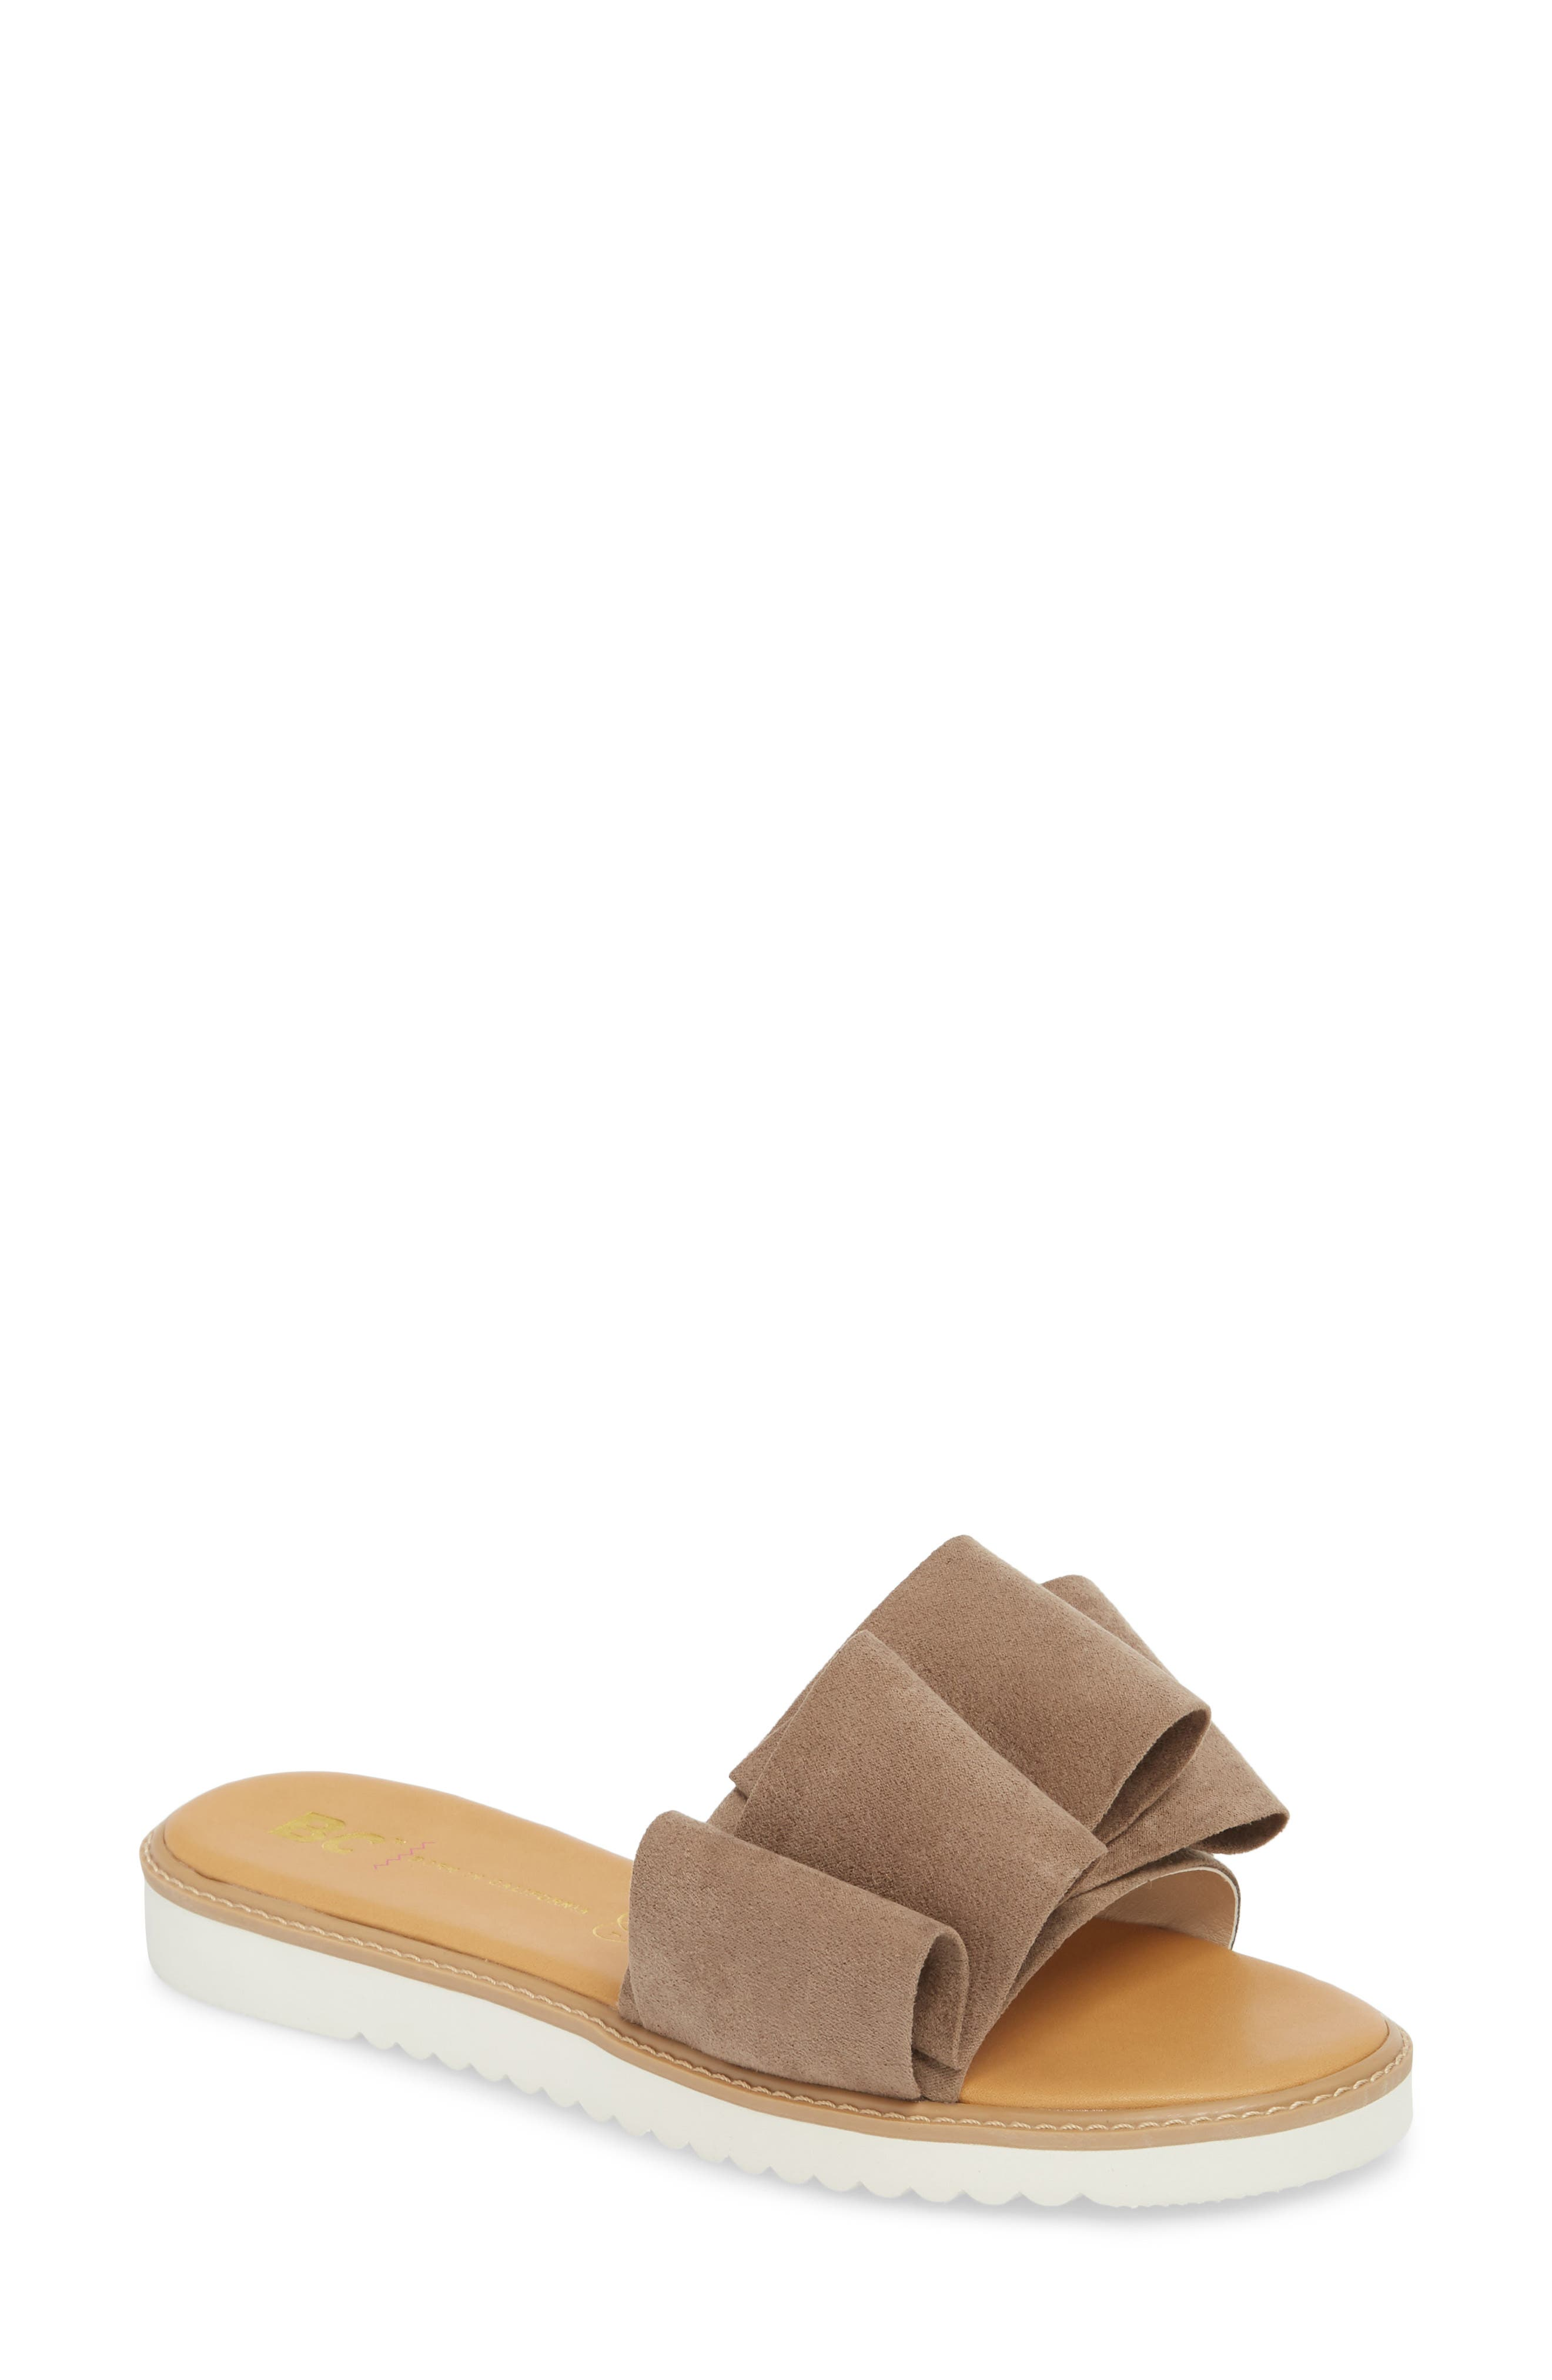 Fun for All Ages Pleated Sandal,                         Main,                         color, TAUPE SUEDE